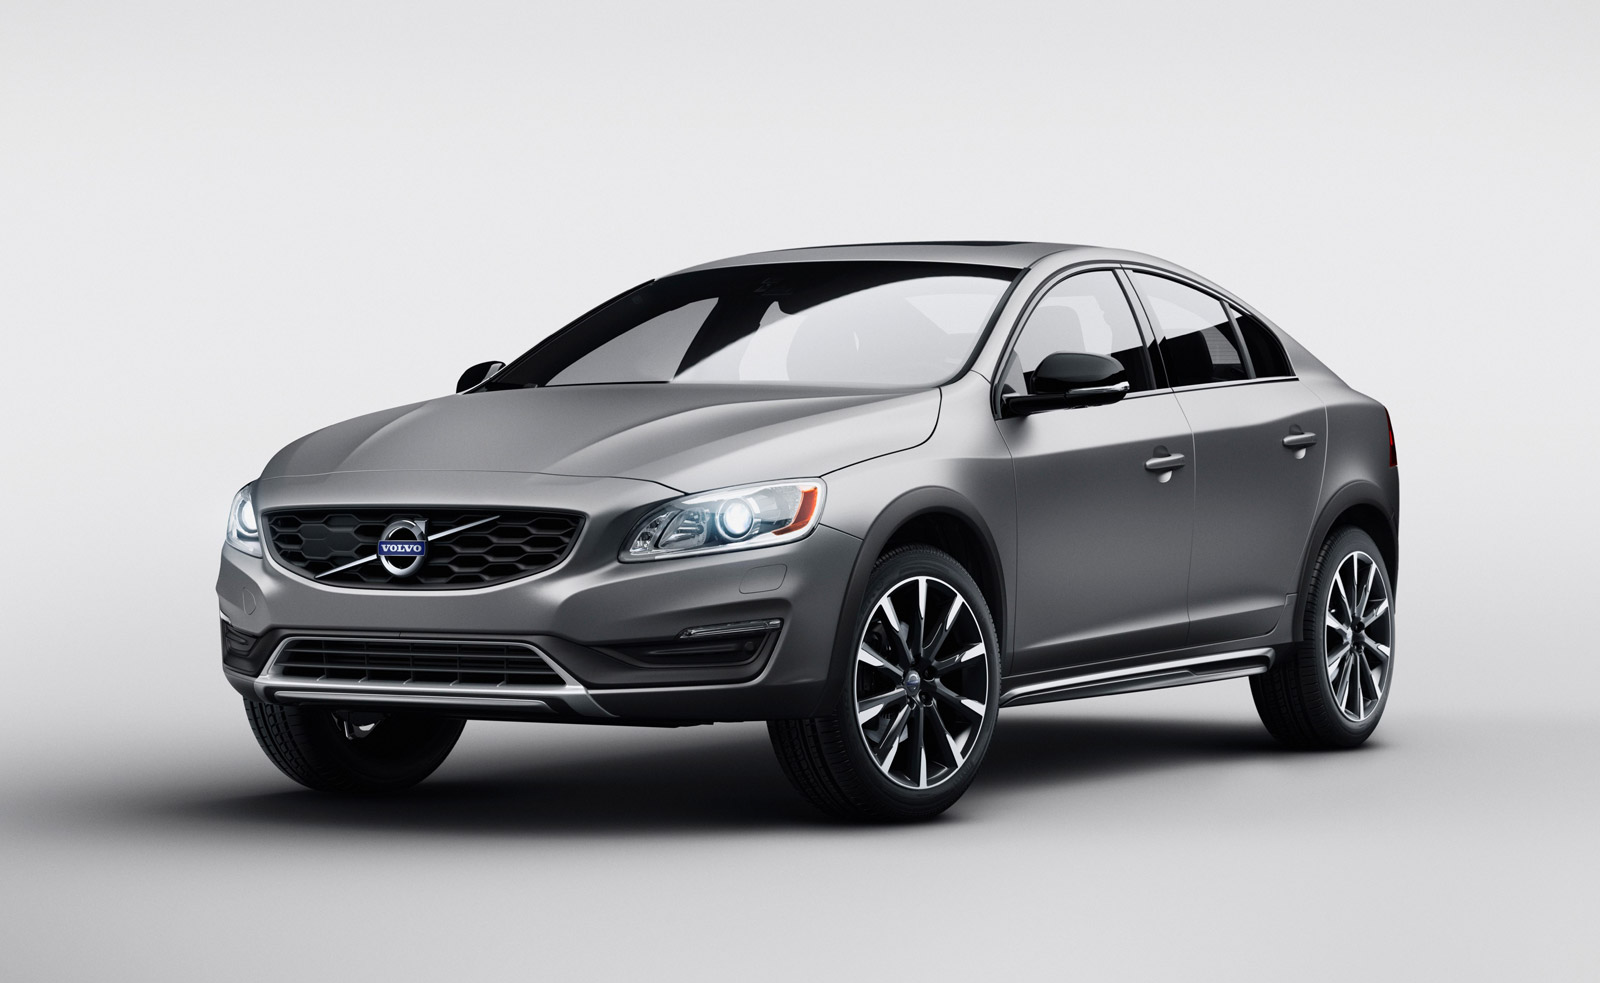 2016-volvo-s60-cross-country_100496279_h